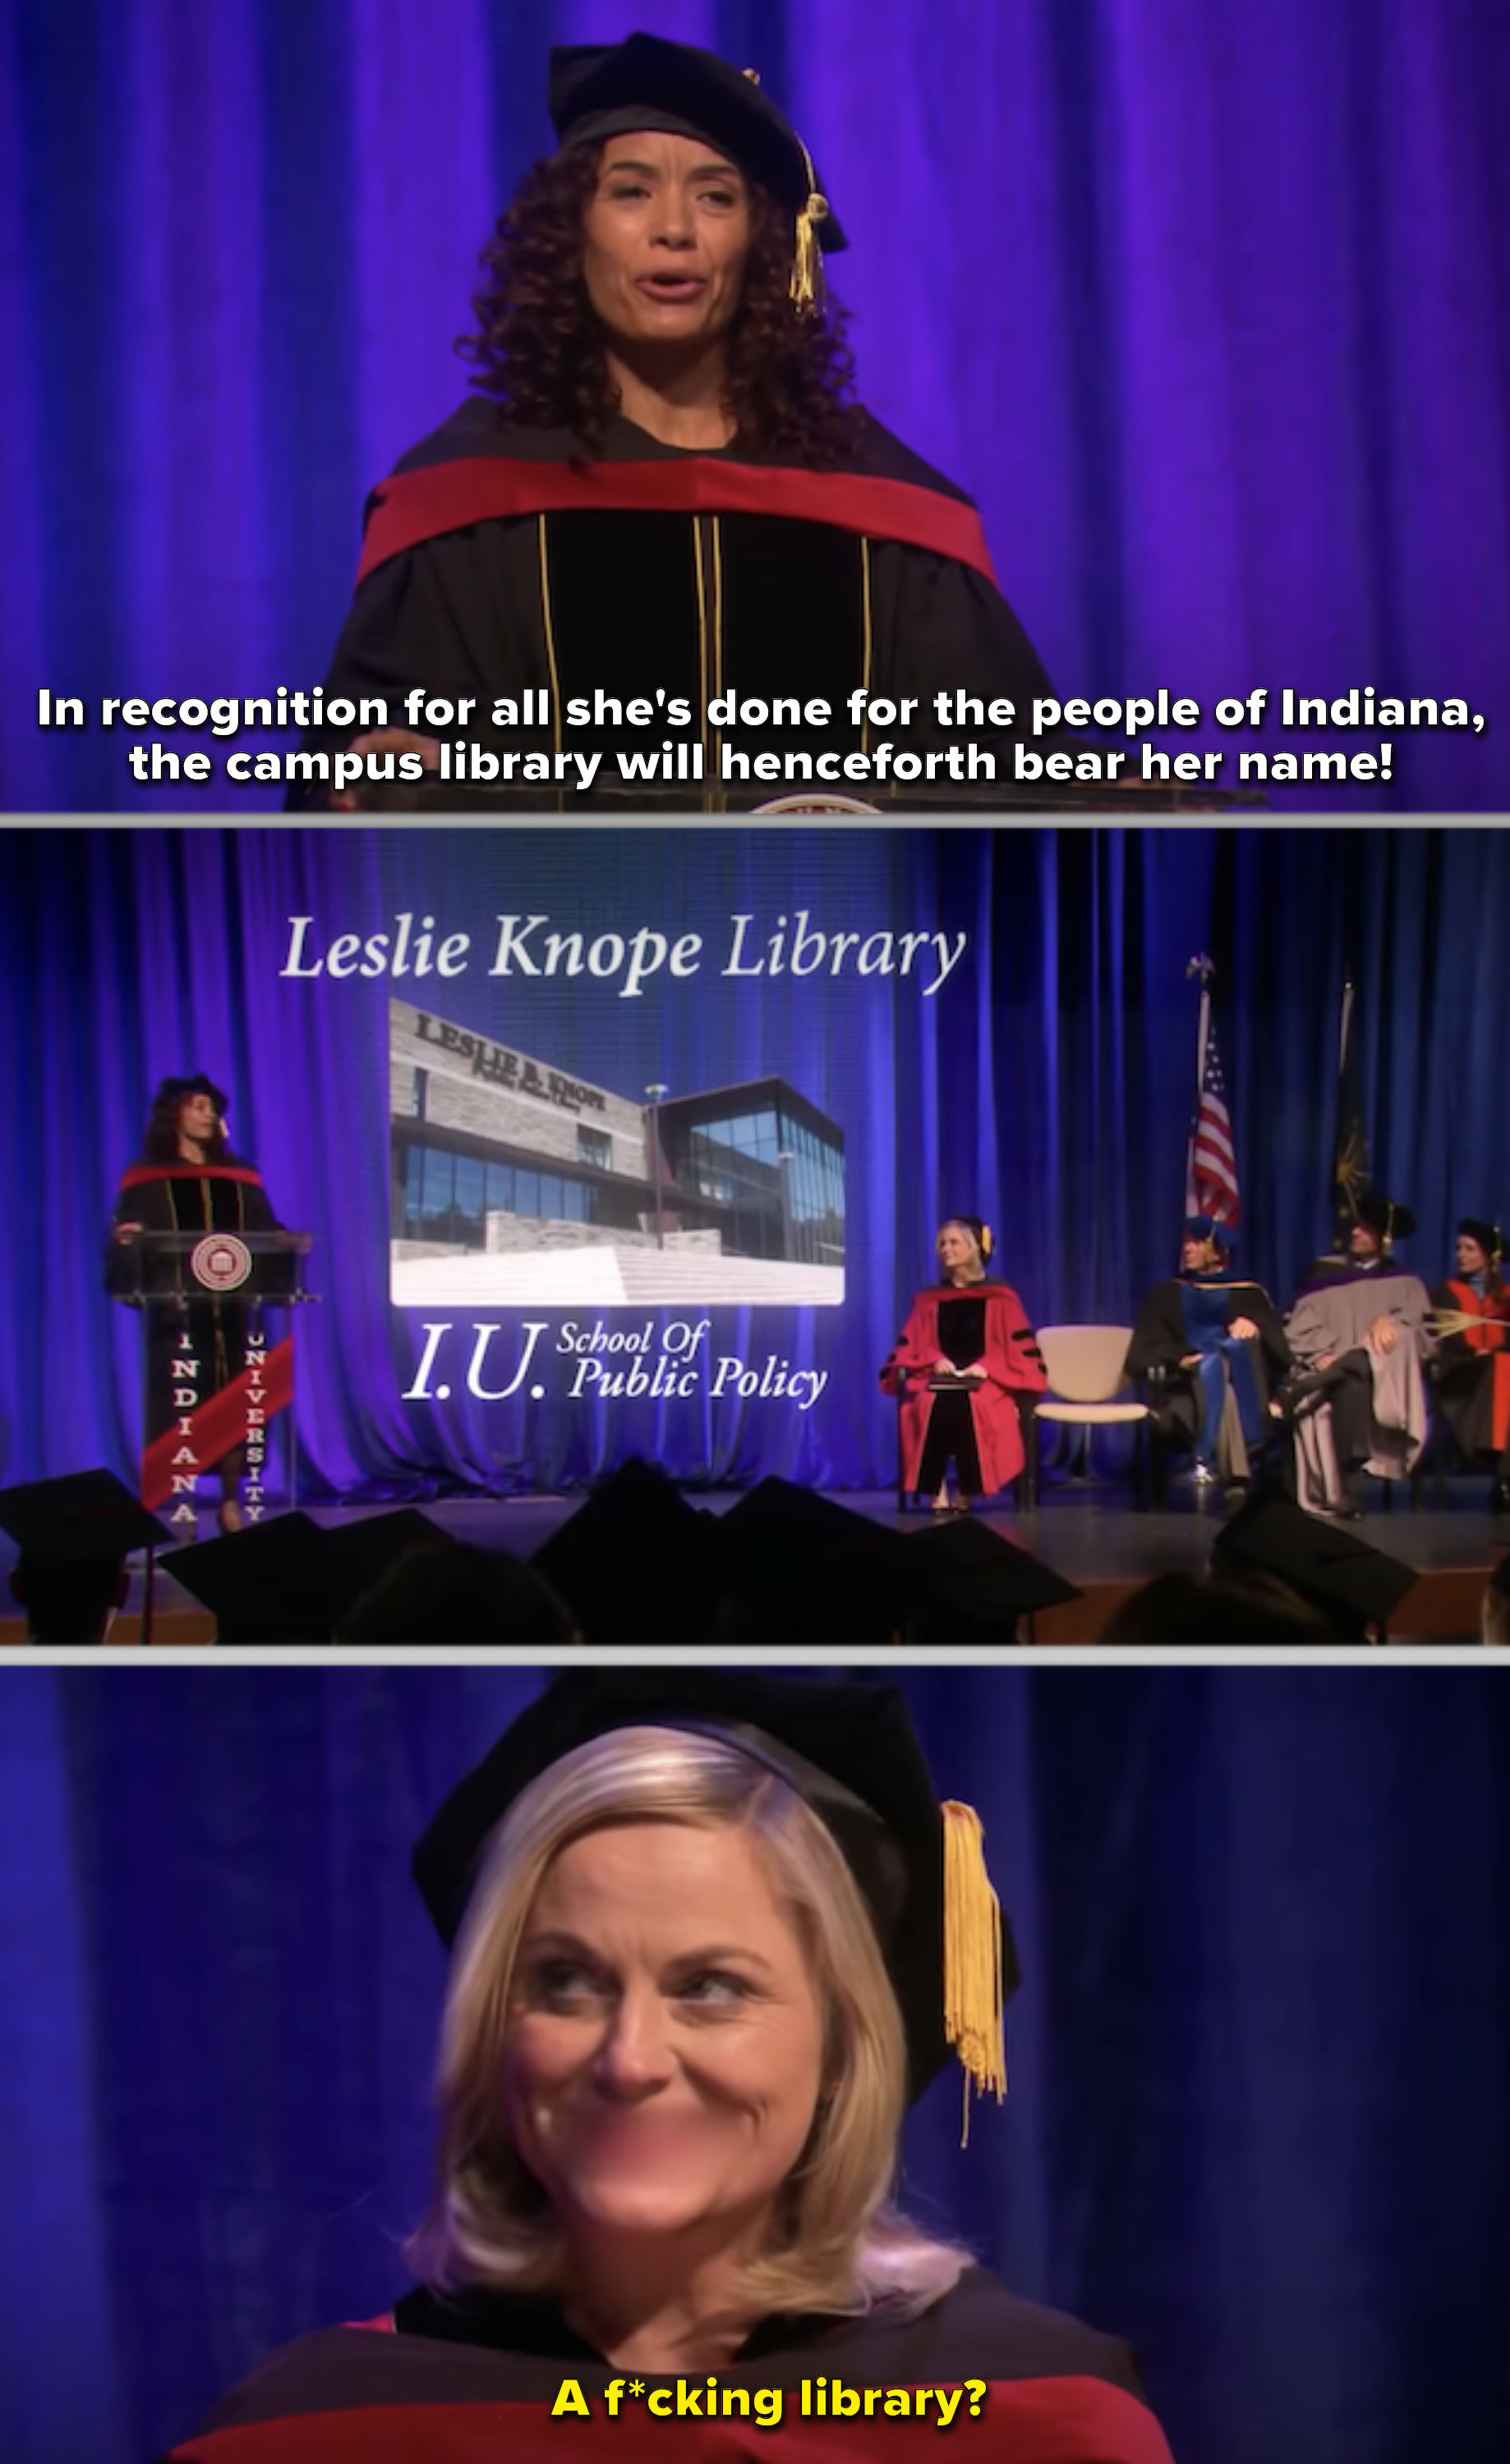 Leslie Knope giving a commencement address and being honored with a school library named after her